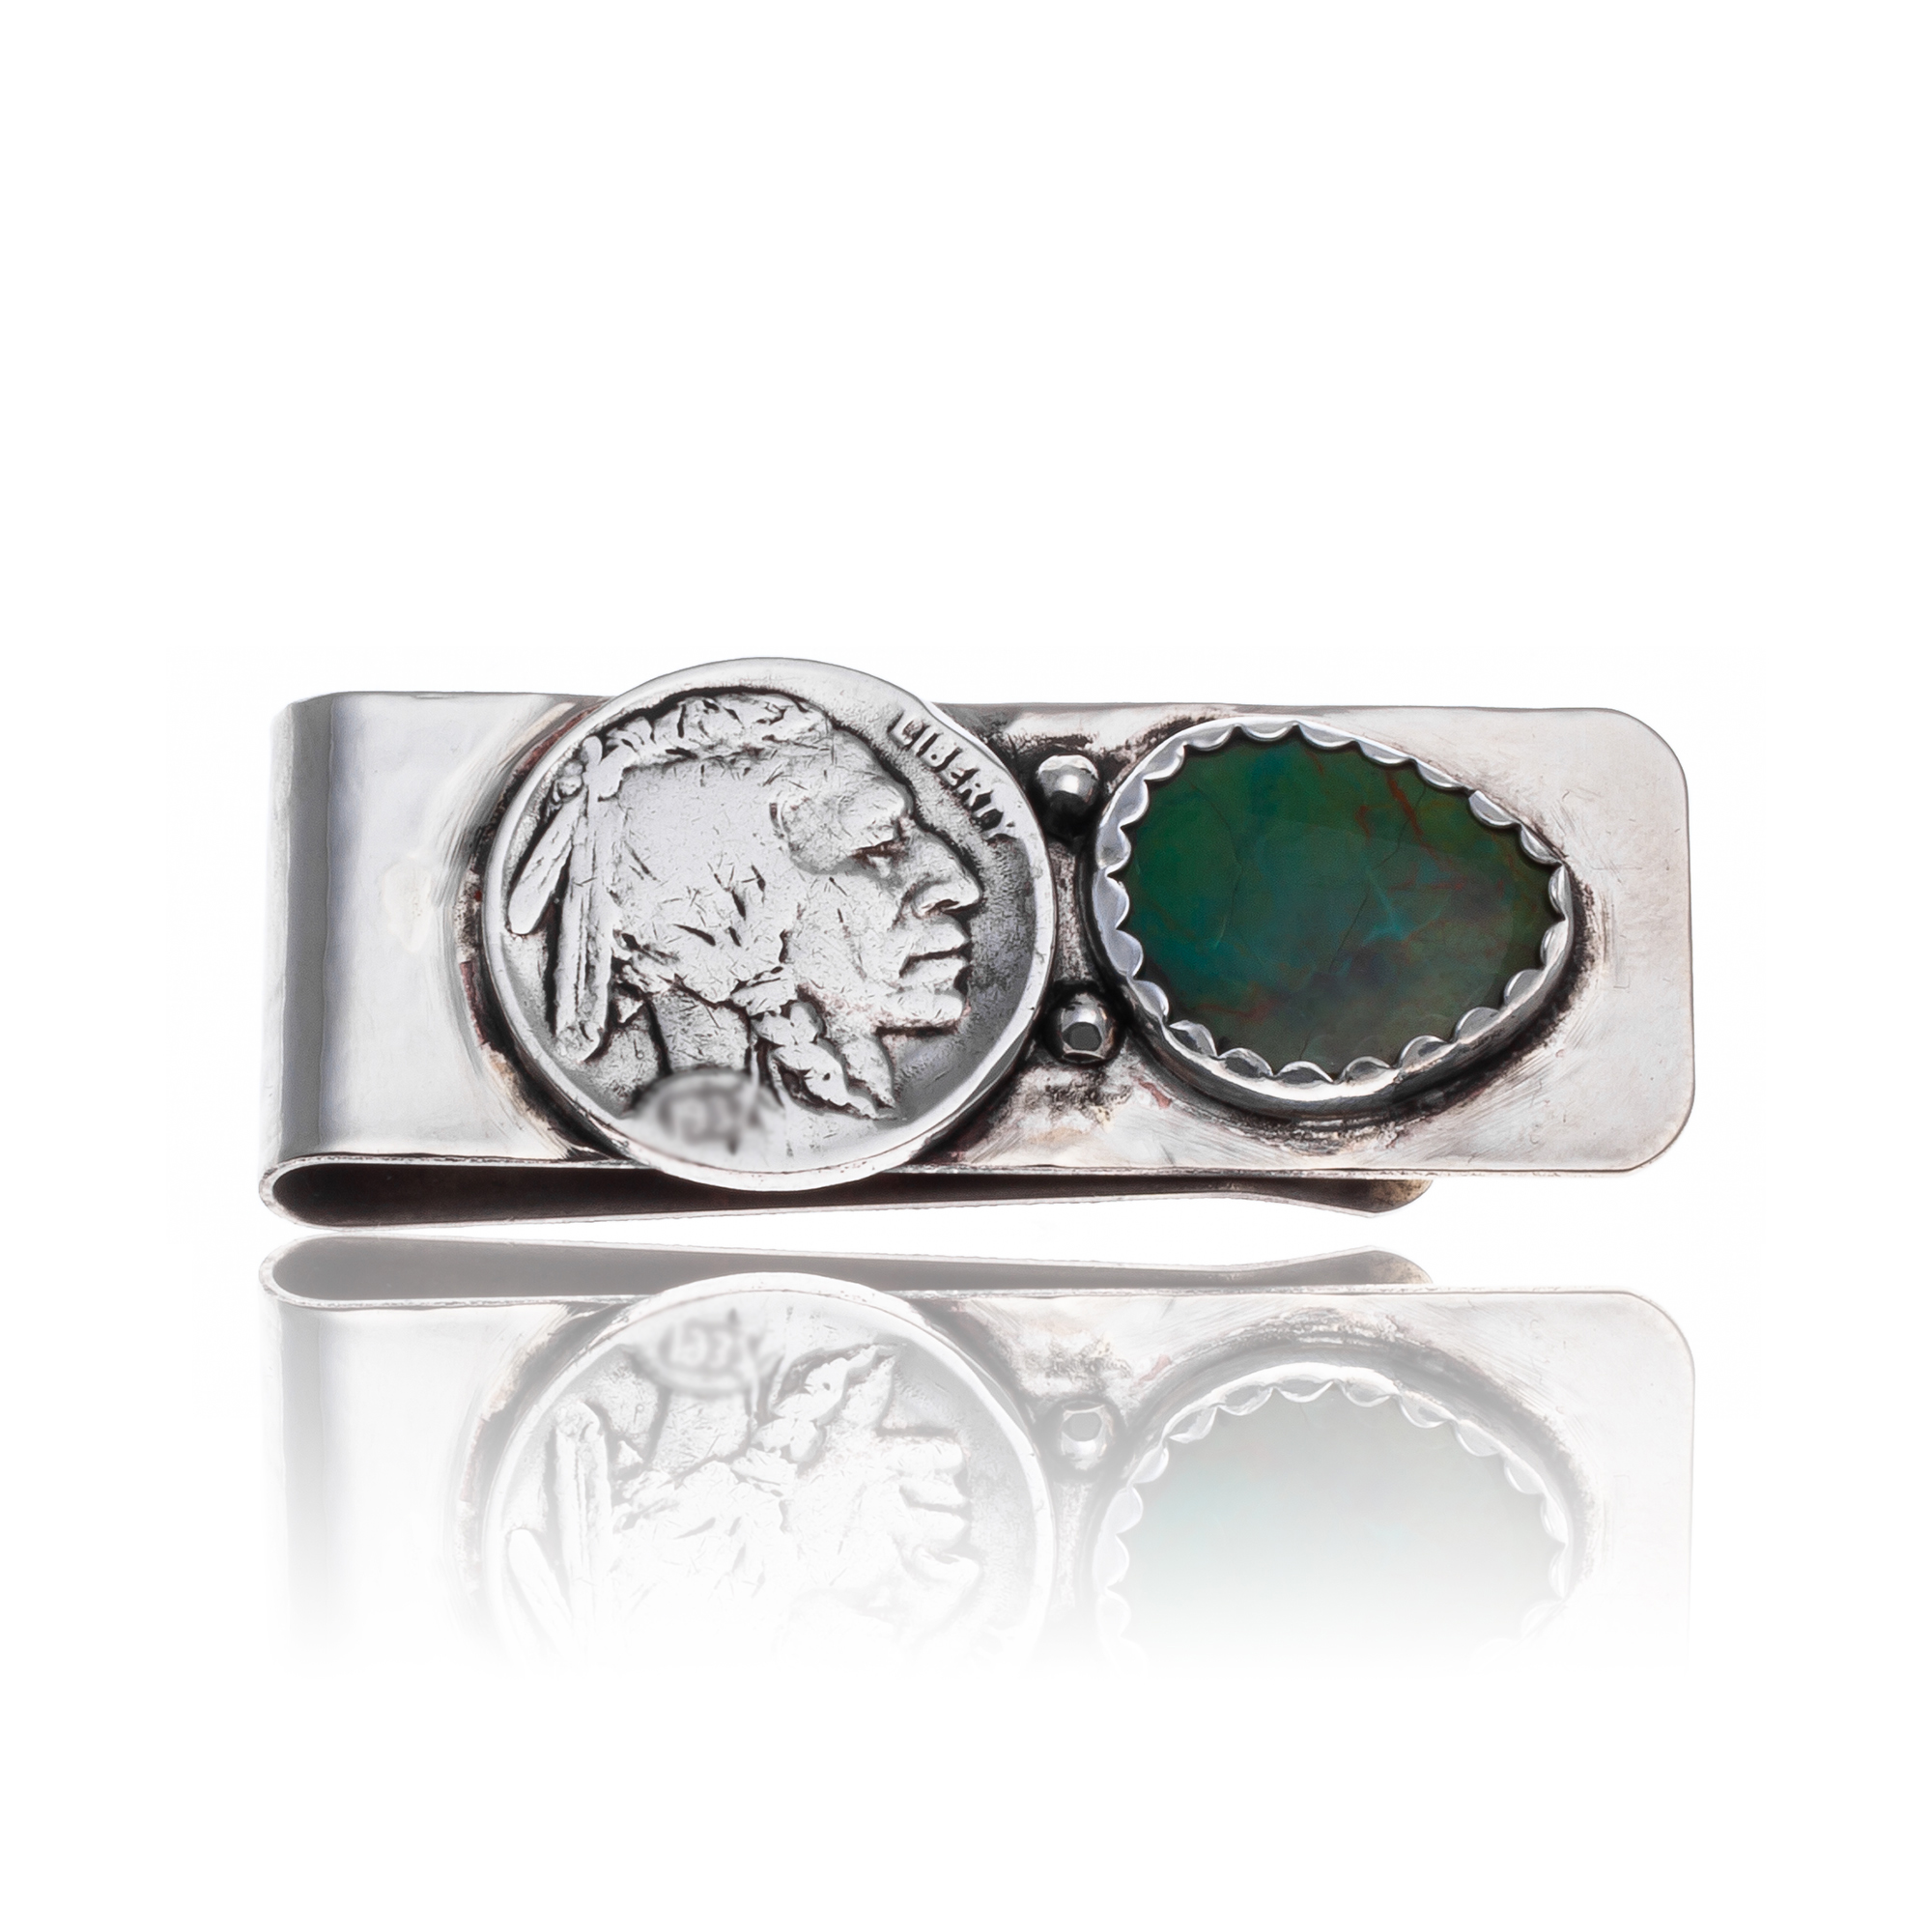 Natural Turquoise .925 Sterling Silver and Nickel Certified Authentic Navajo Native American Handmade Vintage Style Old Buffalo Coin Money Clip 11248-2 All Products 371190437901 11248-2 (by LomaSiiva)